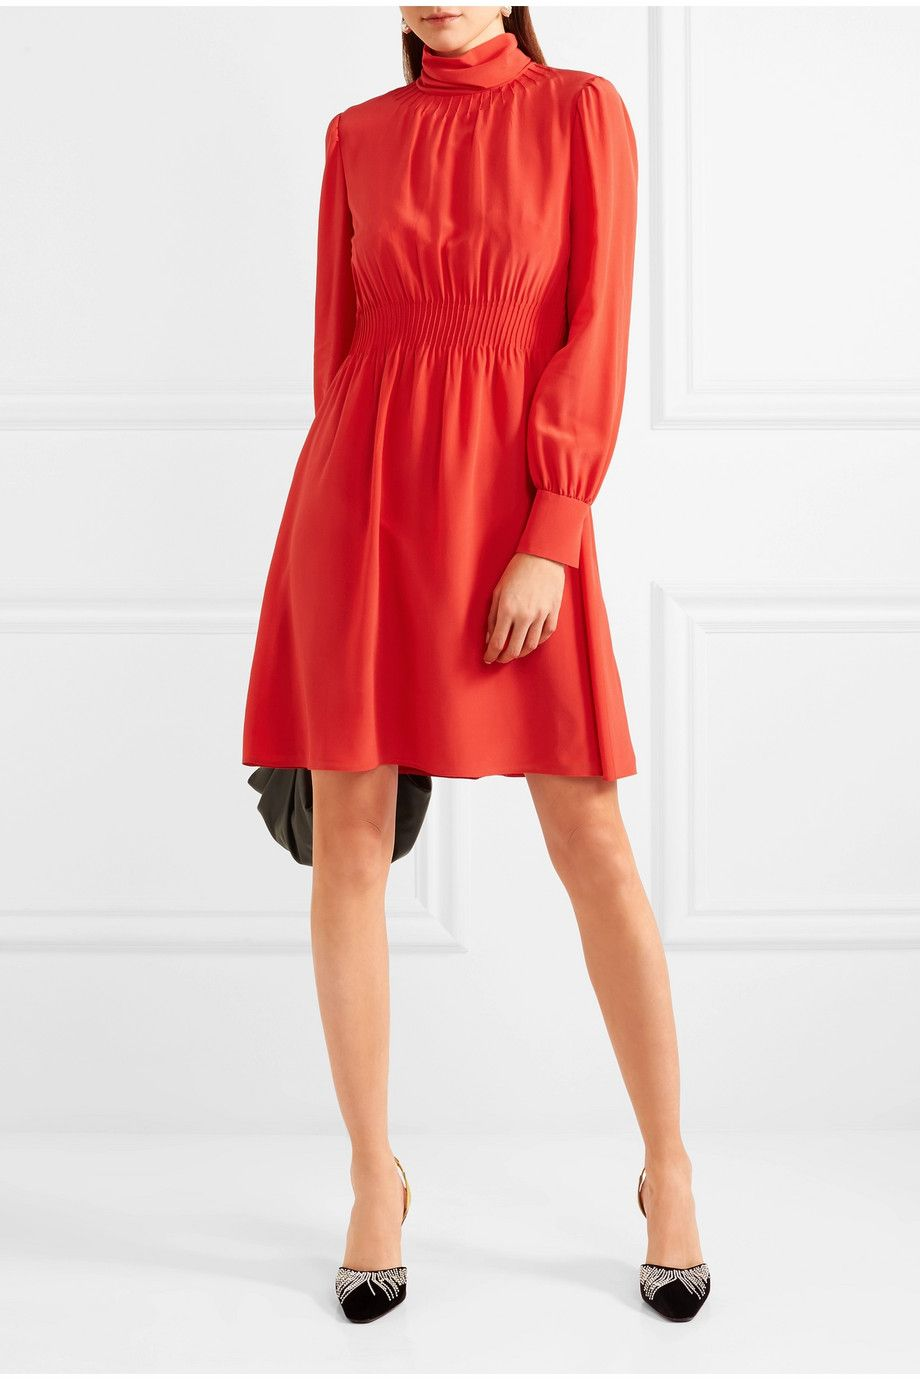 Discount For Cheap Pintucked Silk Crepe De Chine Turtleneck Mini Dress - Red Valentino In China Sale Online Buy Cheap Classic Genuine For Sale f7GK8nu